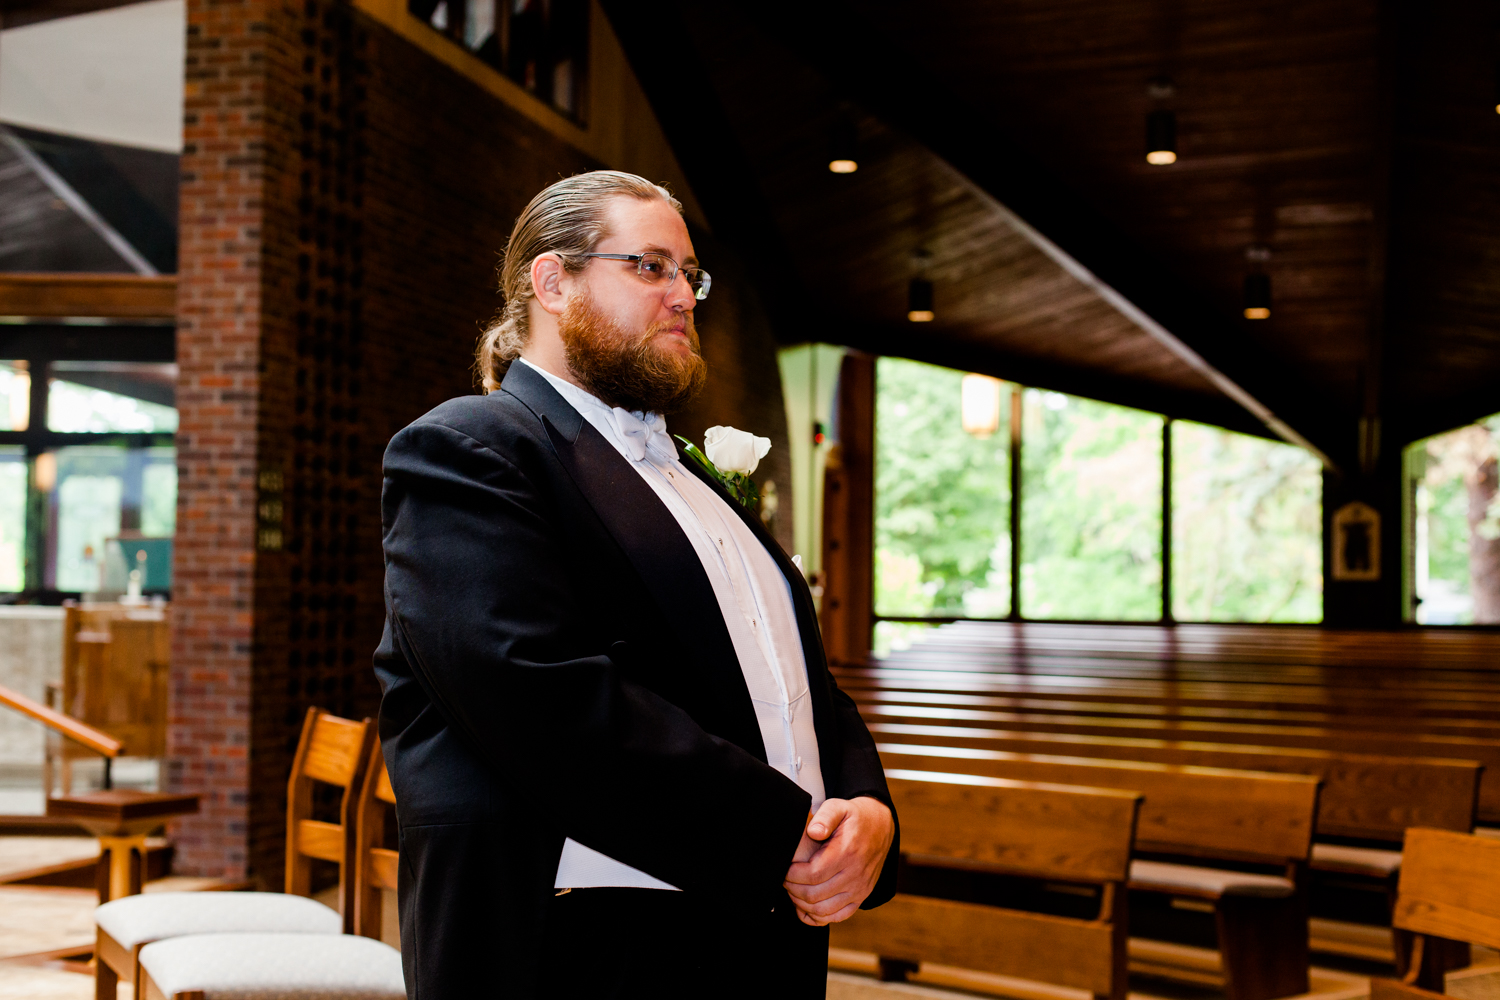 Groom watches his bride walk down the aisle in a church. He is emotional.